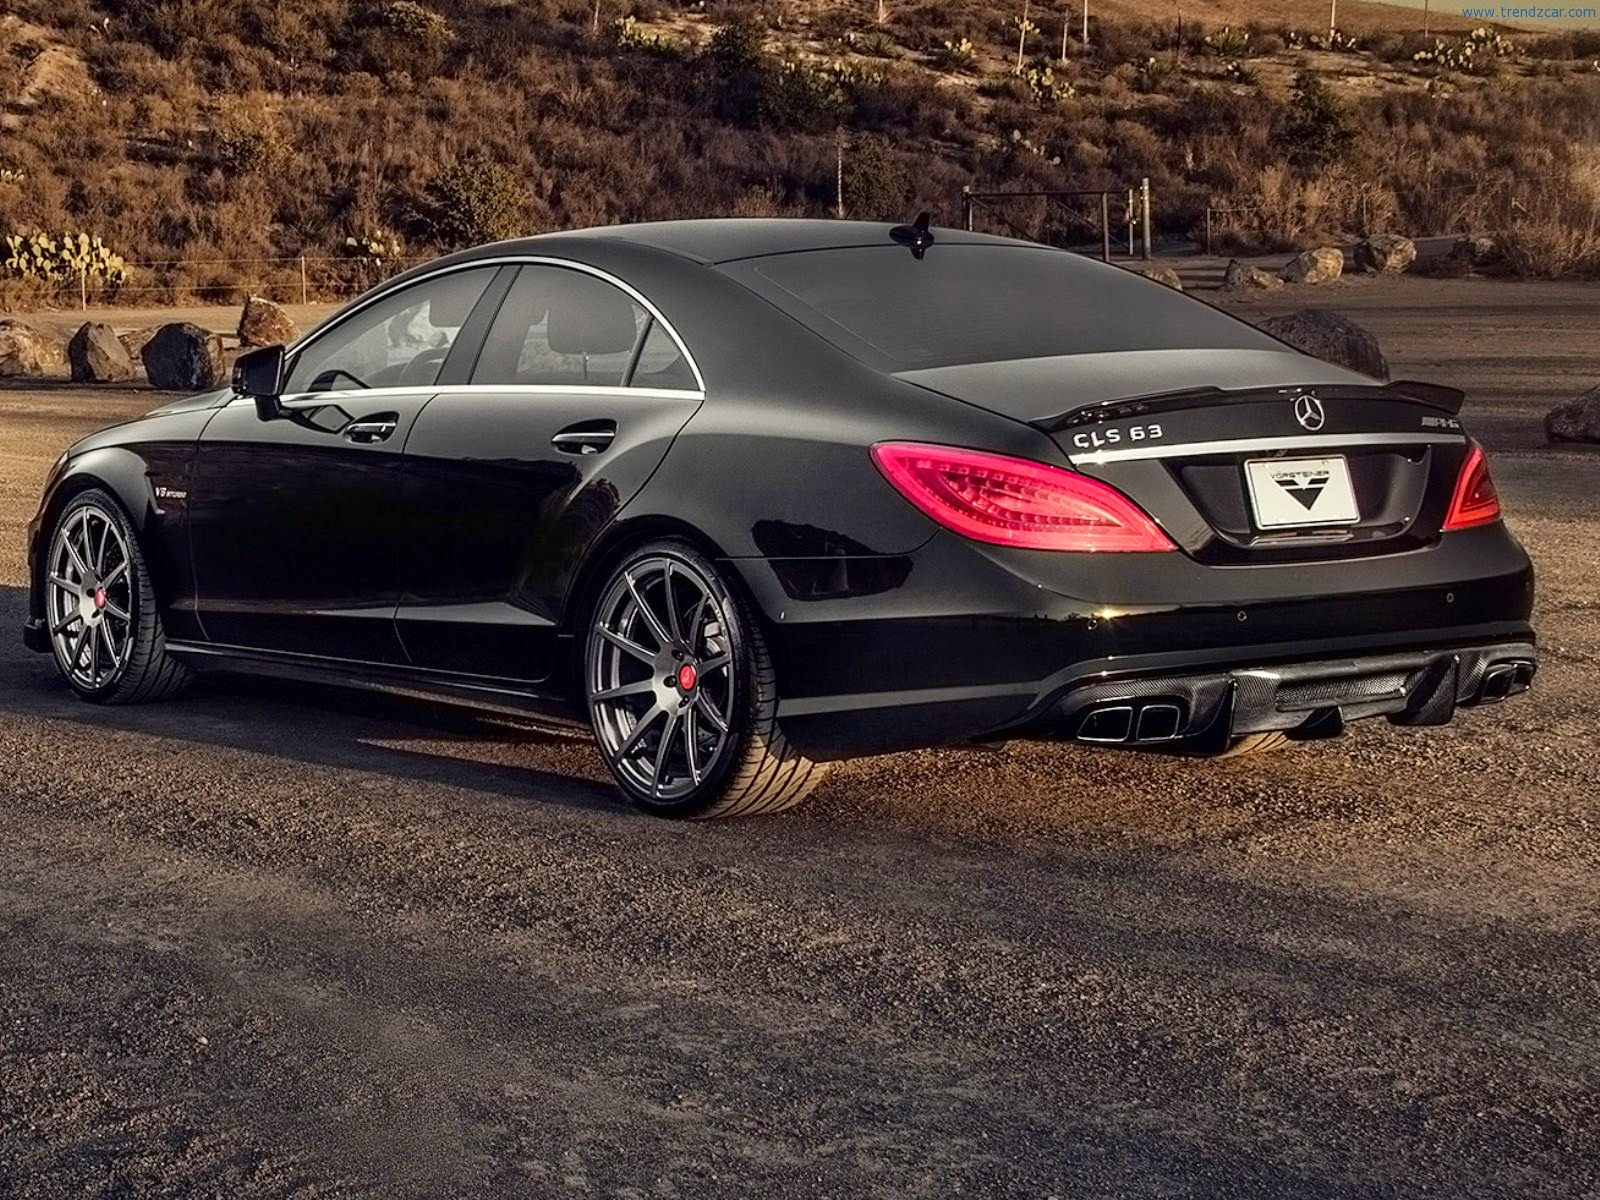 amg mercedes cls 63 benz vorsteiner cls63 wallpapers cl hd sumptuous rear otopan rate sedan ml